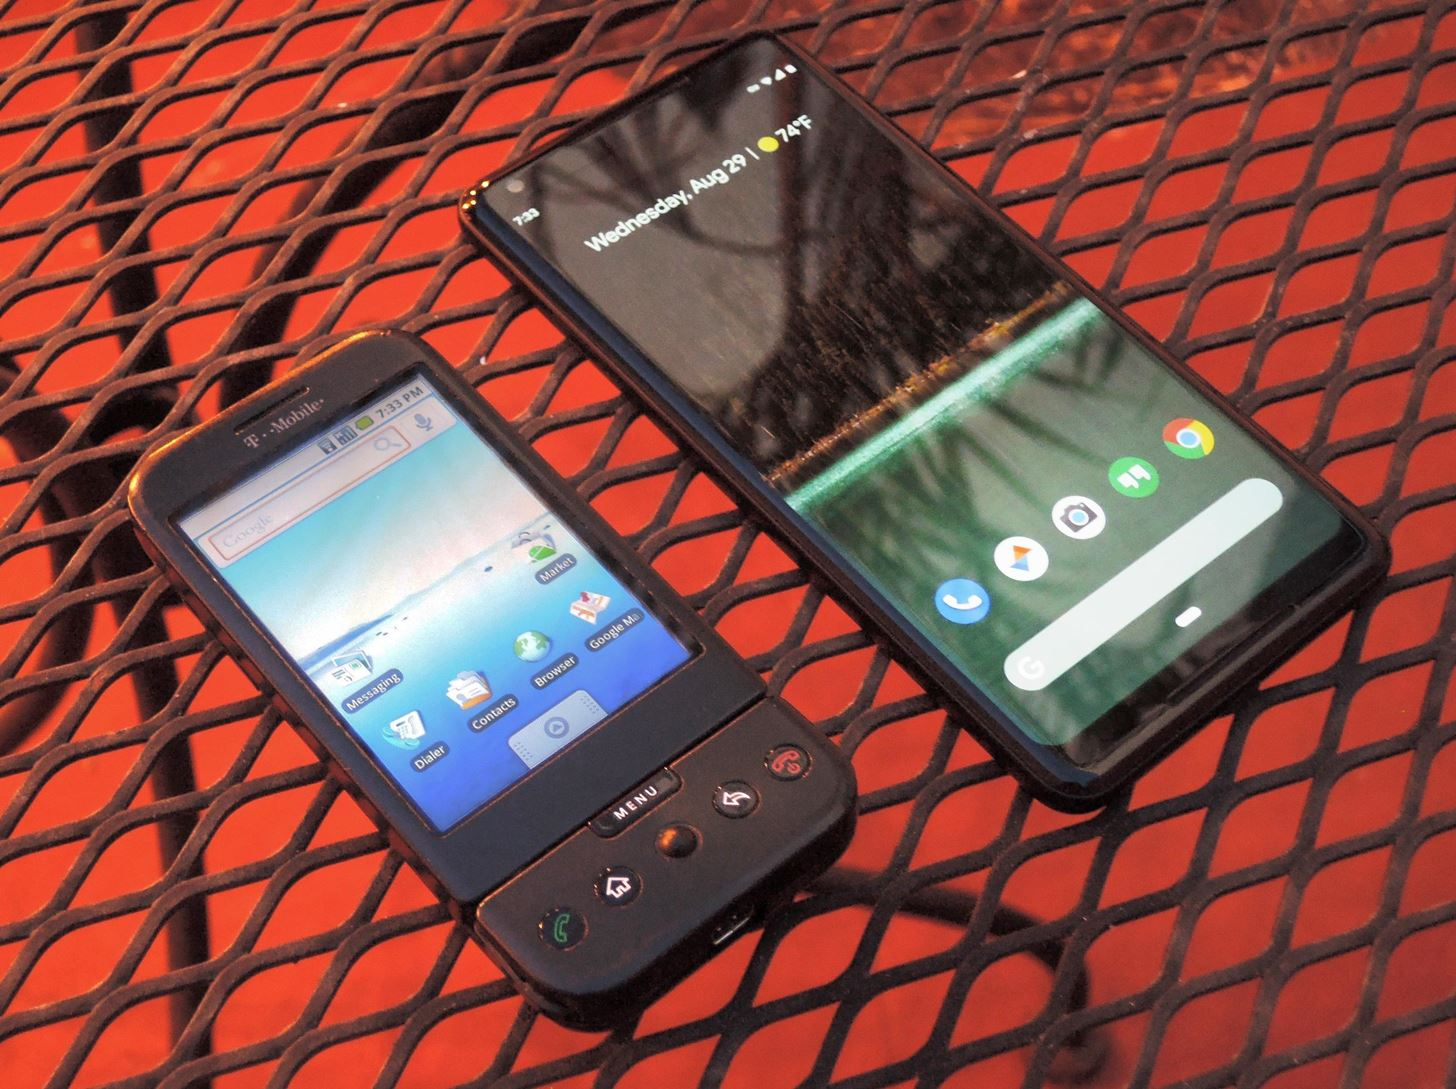 The first Android phone debuted 10 years earlier this month - What a difference a decade makes